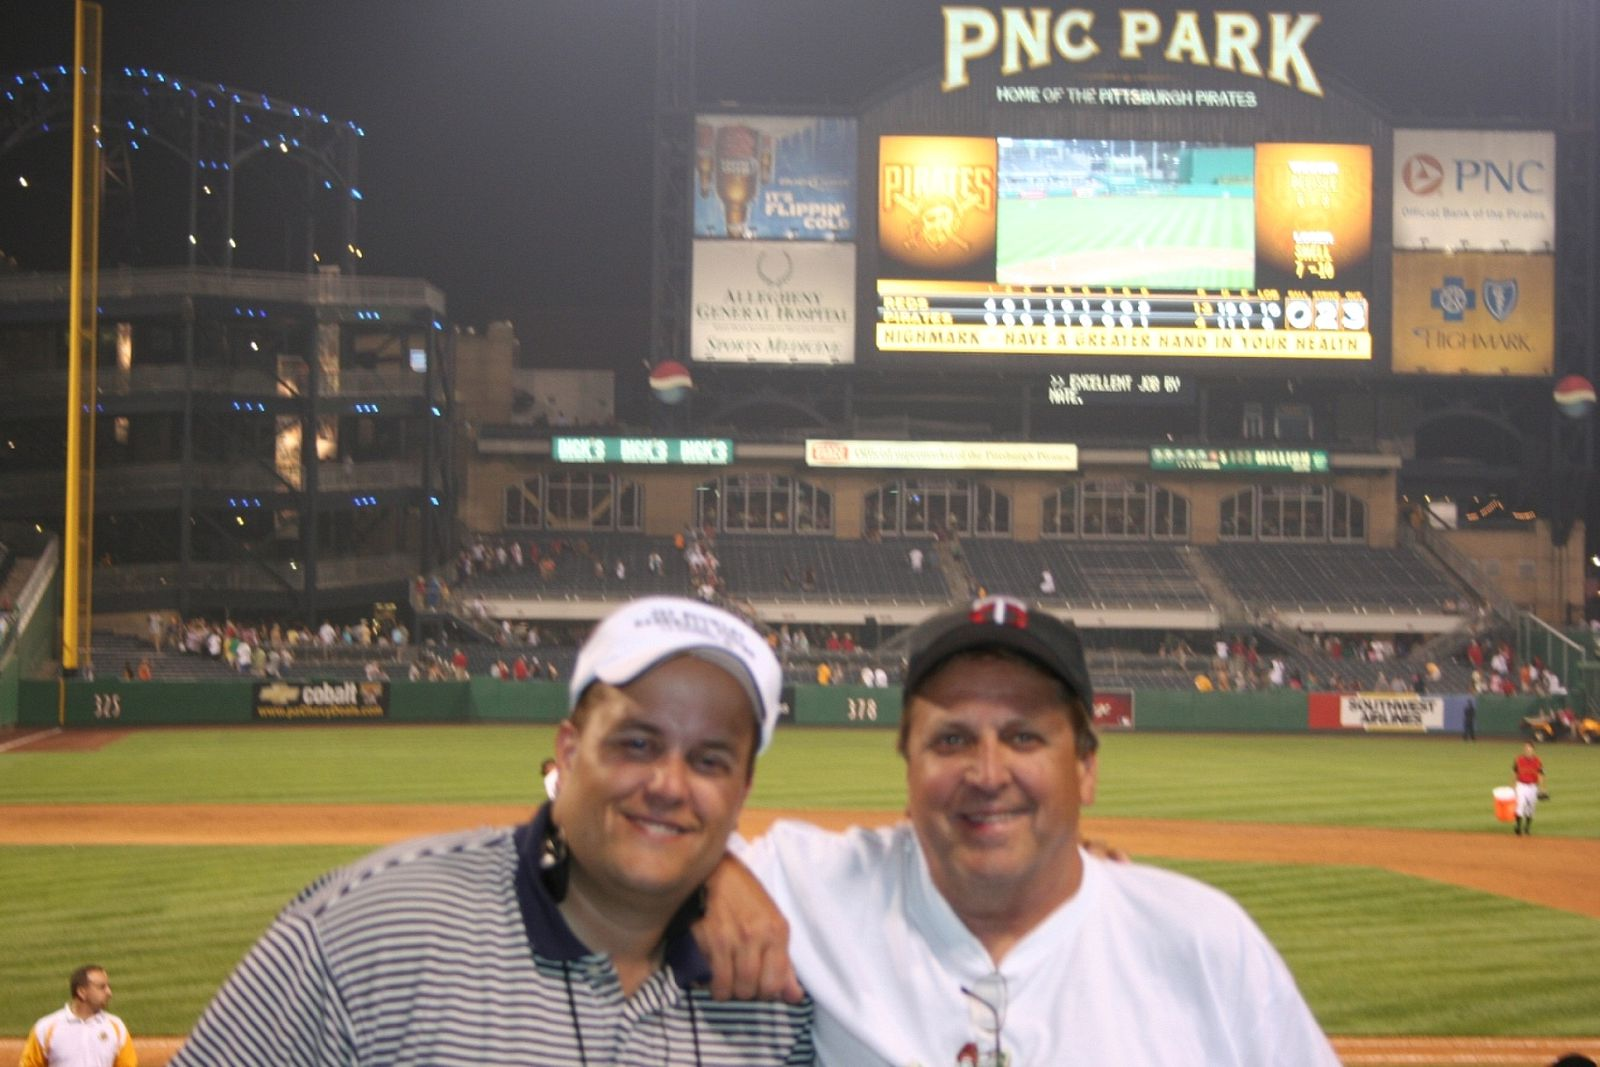 We had our best seats of the trip at PNC Park